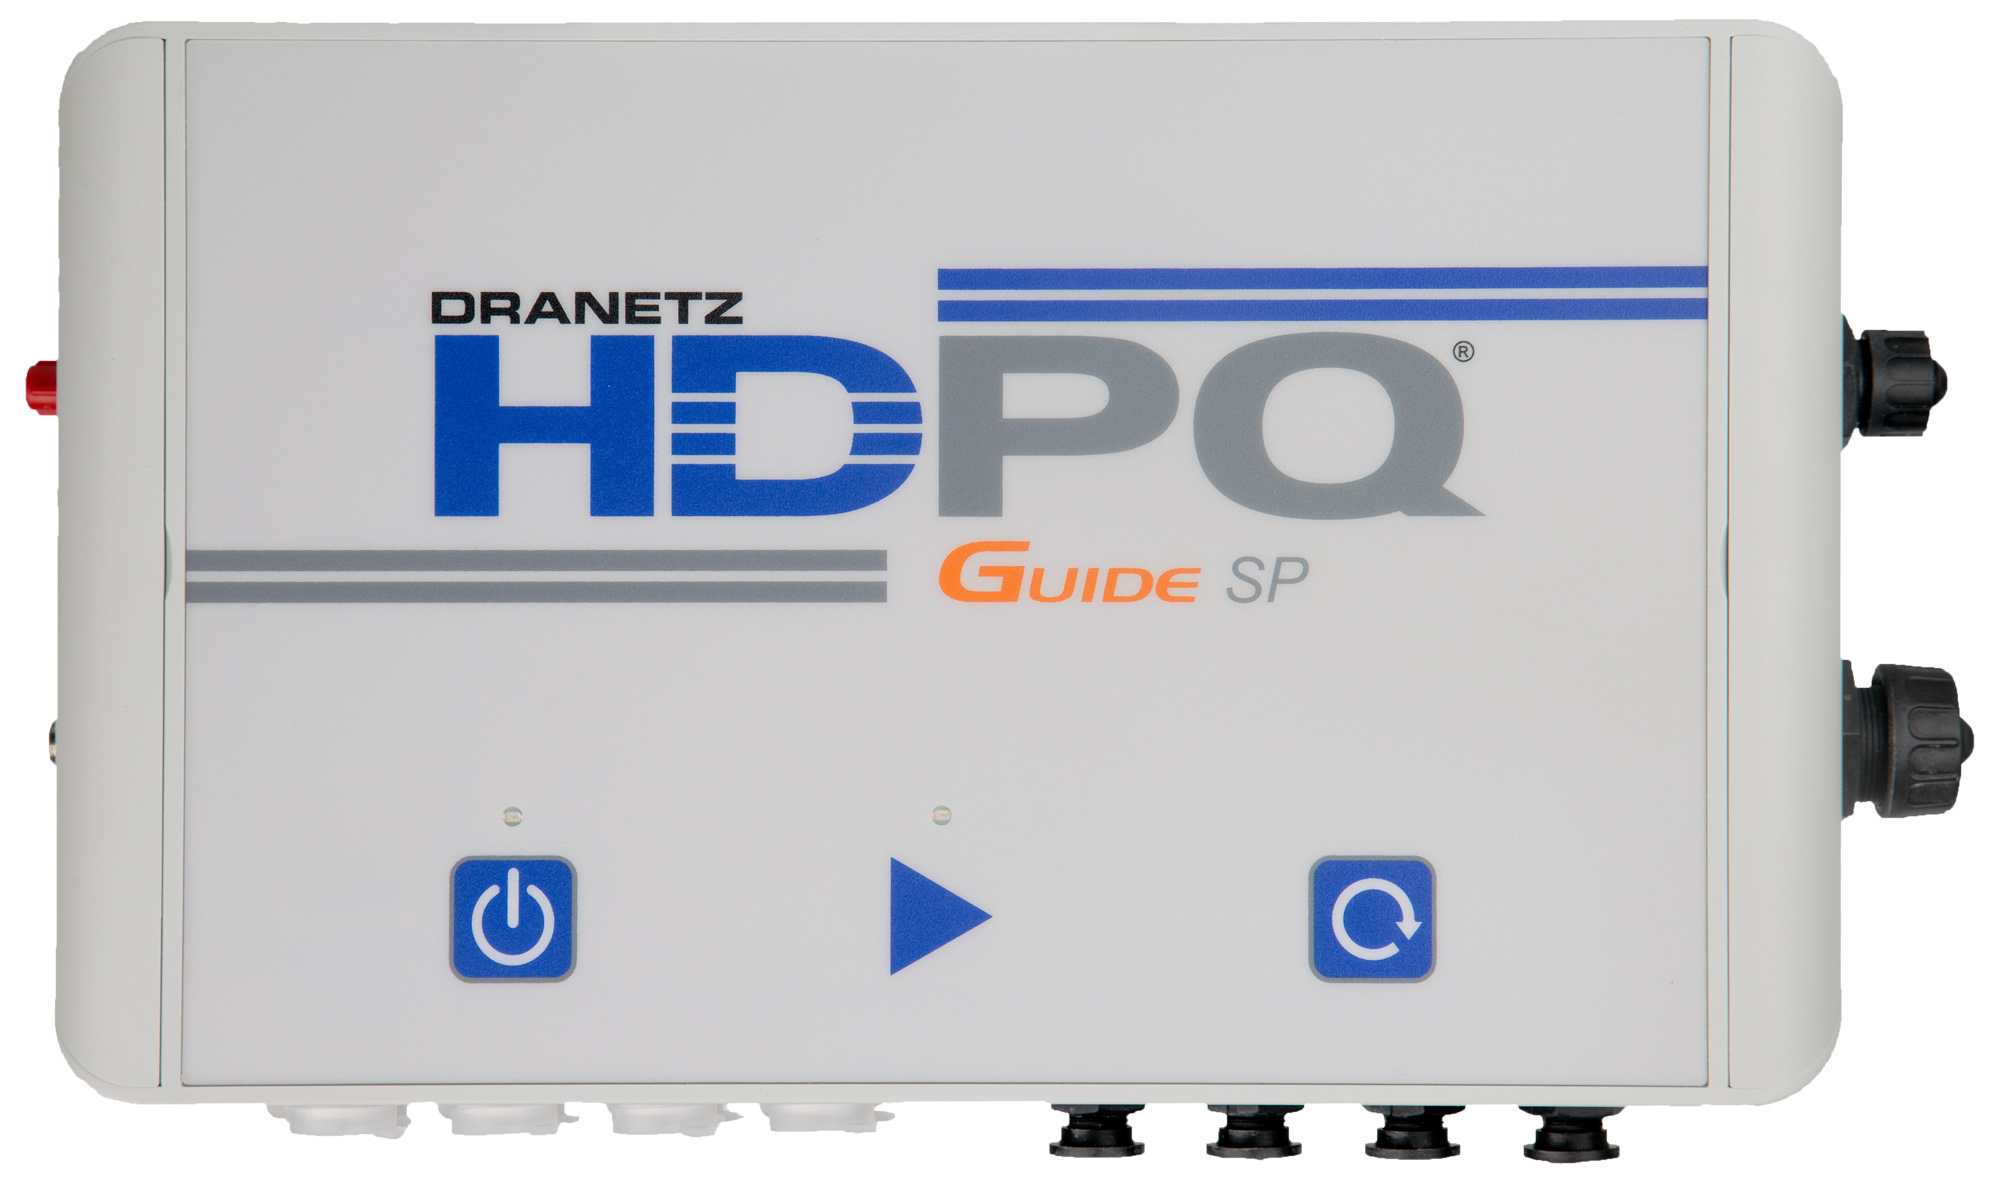 The New Dranetz HDPQ SP - IP65 Protection